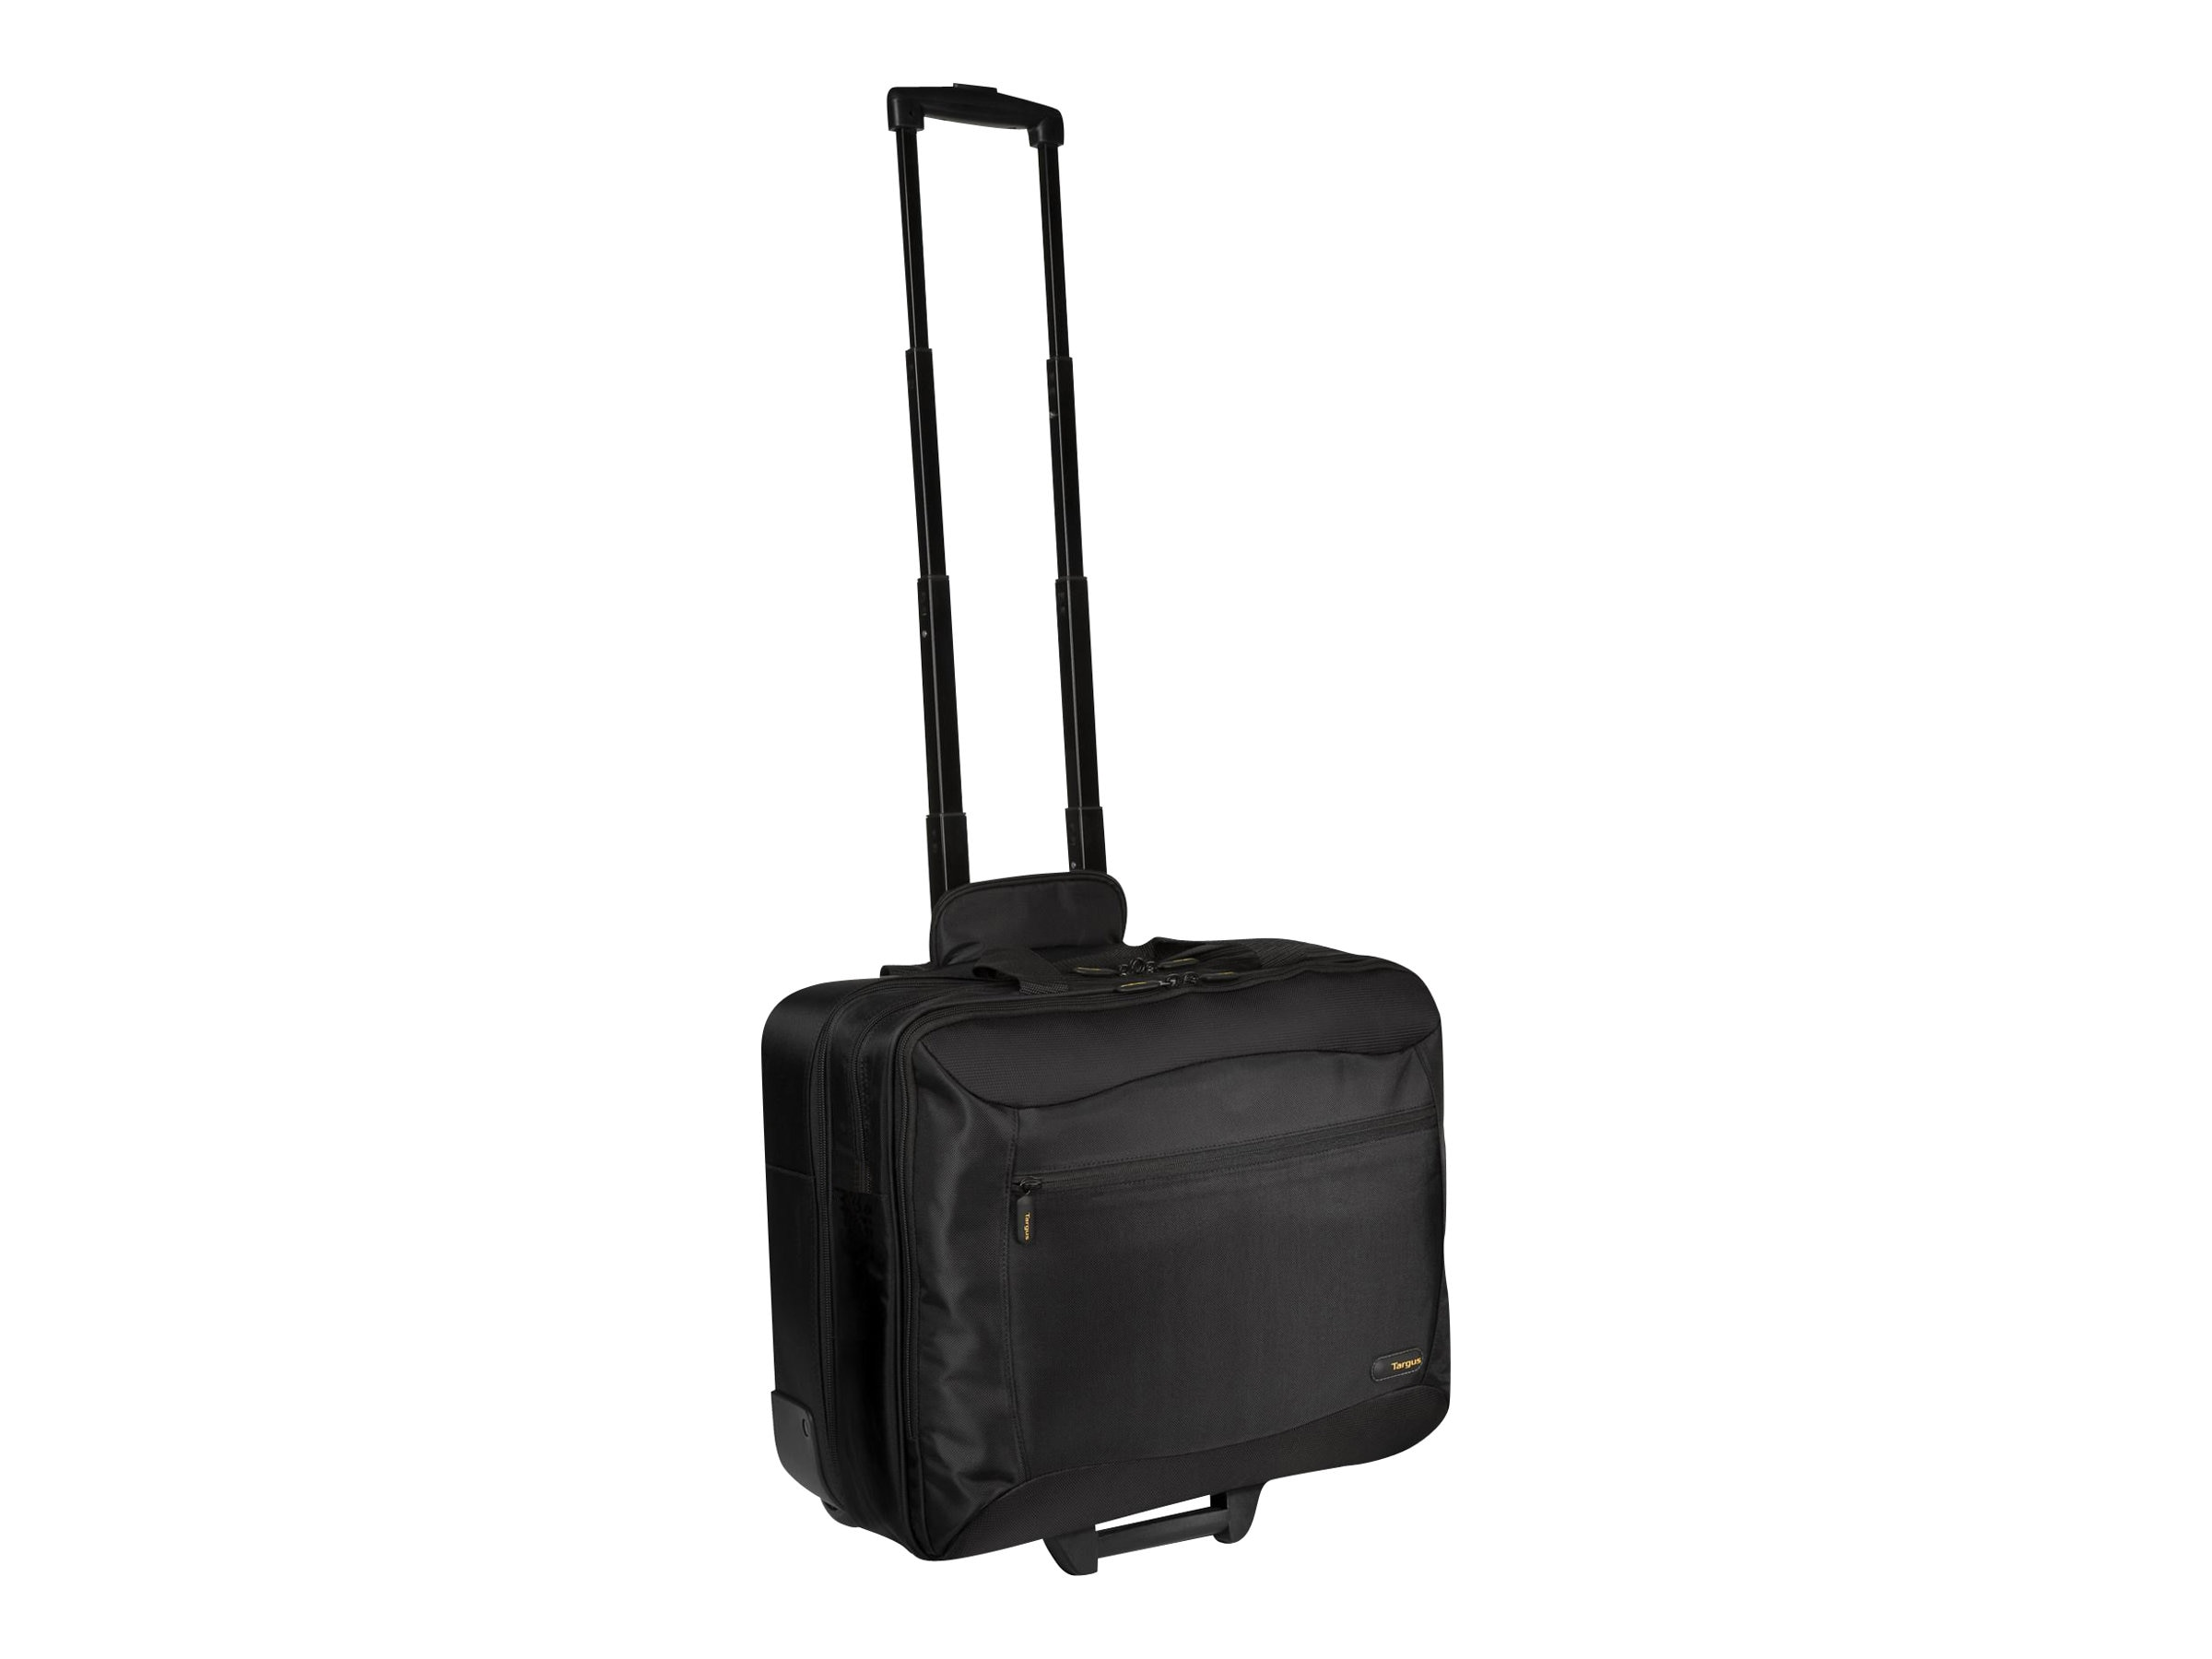 Targus 17 Rolling Travel Notebook Case, Black, 840D Nylon